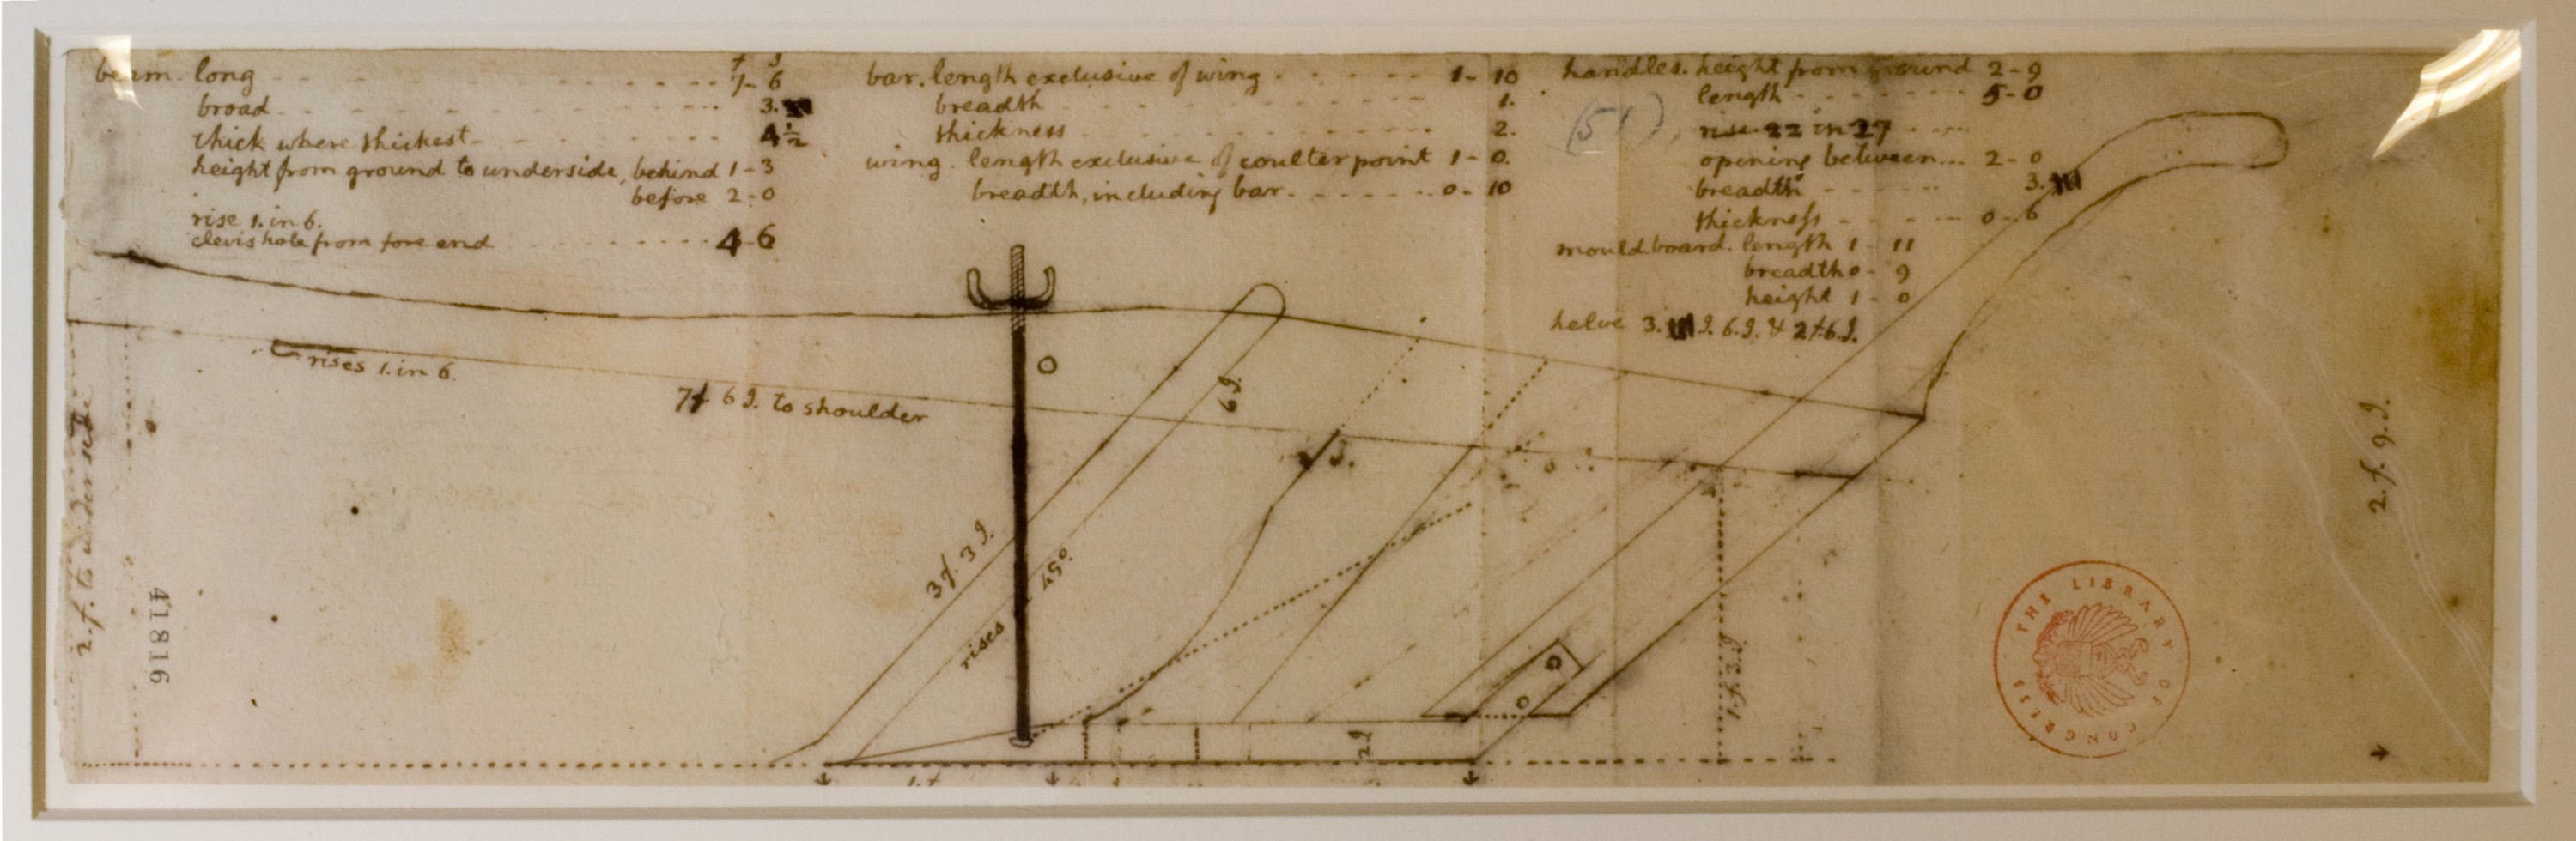 Jefferson's drawing for the Moldboard Plow of Least Resistance